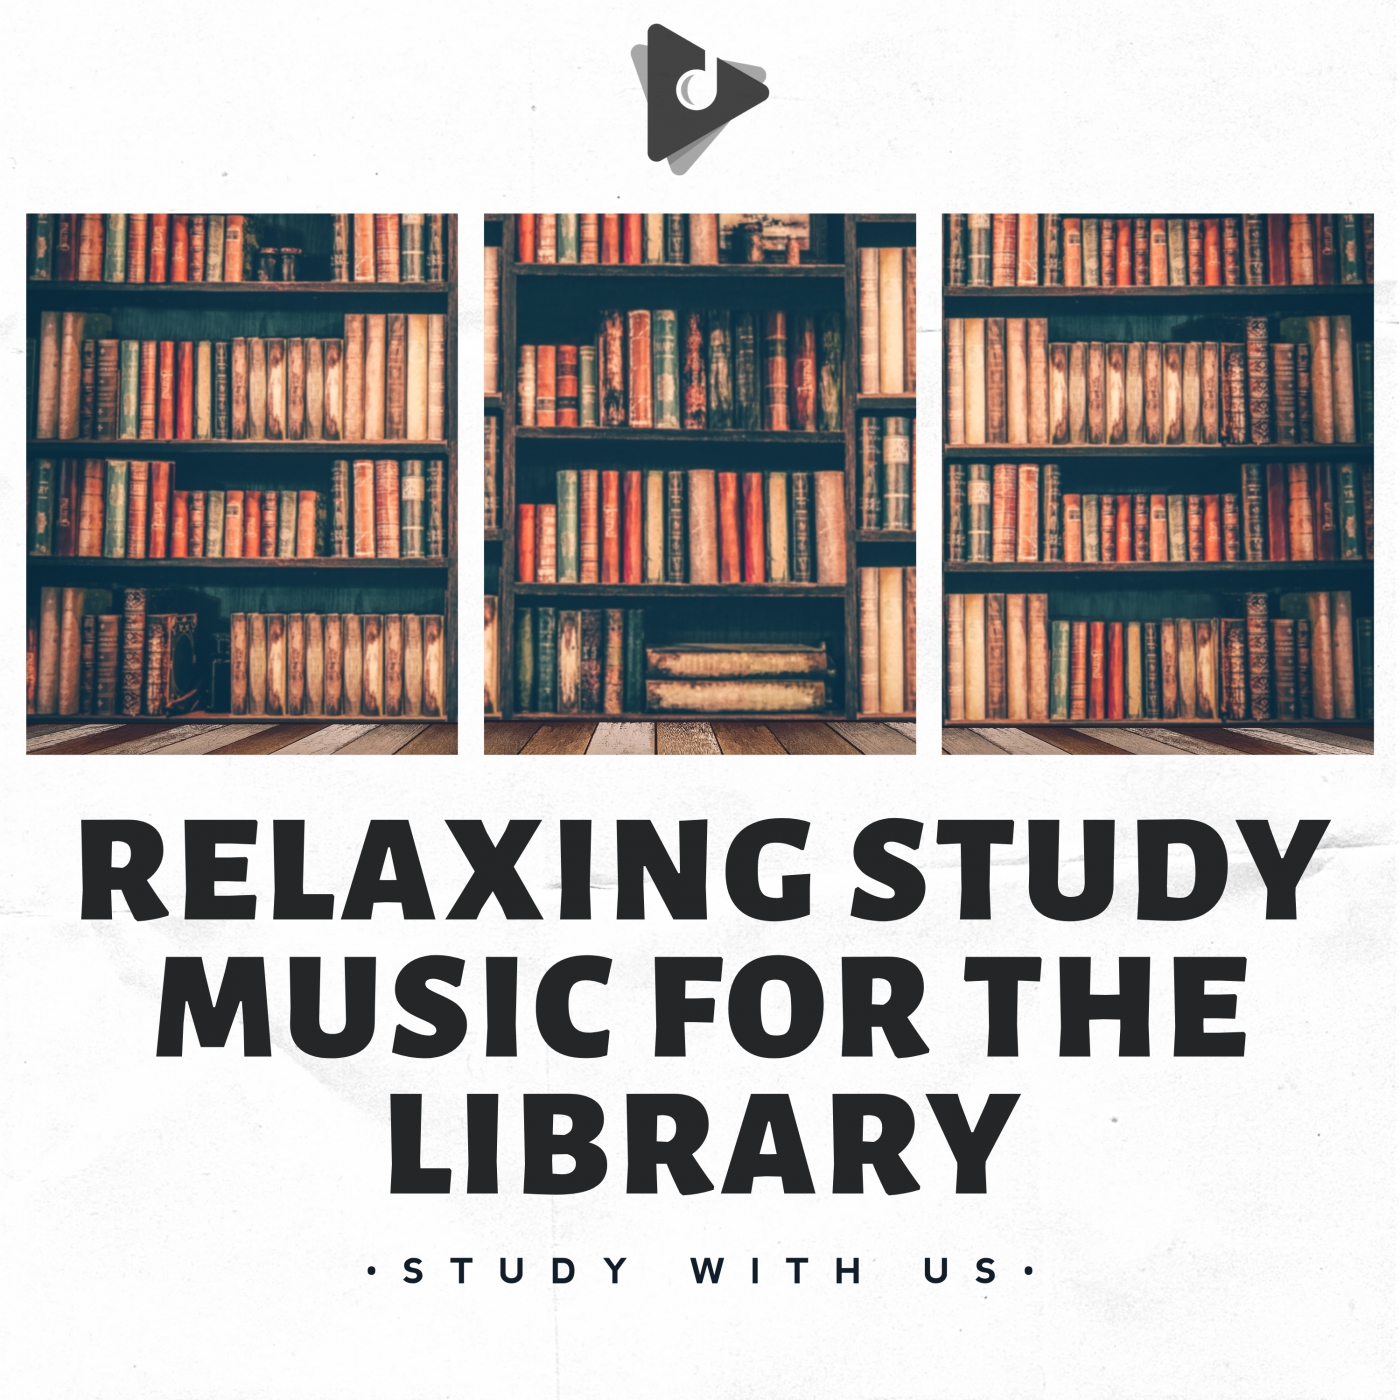 Relaxing Study Music for the Library